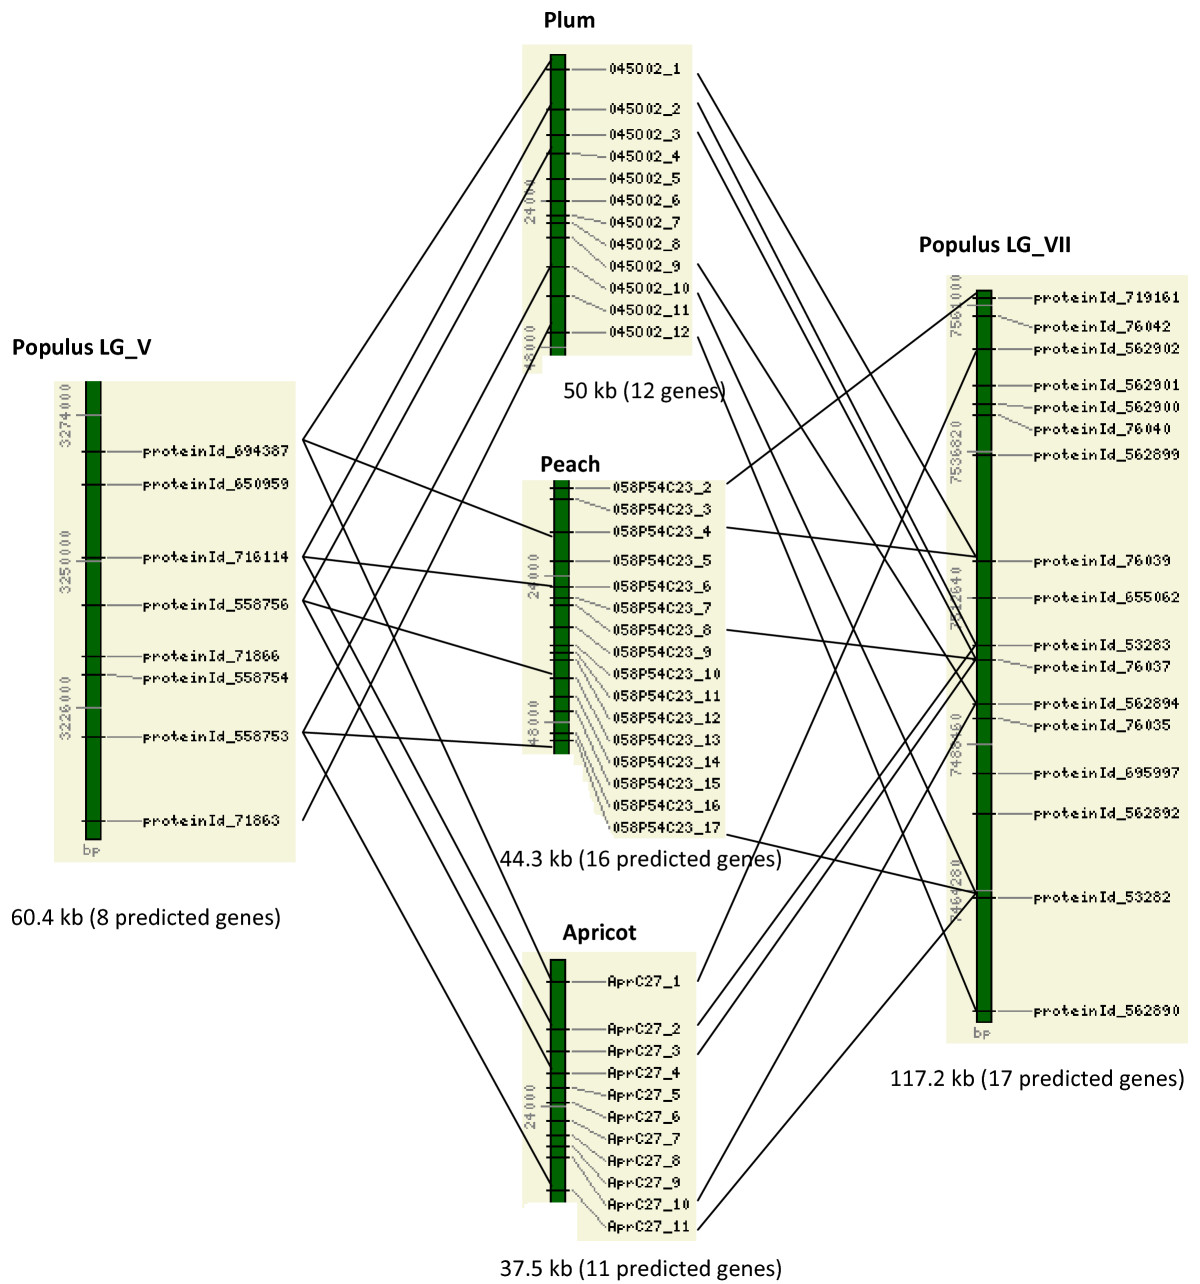 http://static-content.springer.com/image/art%3A10.1186%2F1471-2164-10-76/MediaObjects/12864_2008_Article_1960_Fig1_HTML.jpg